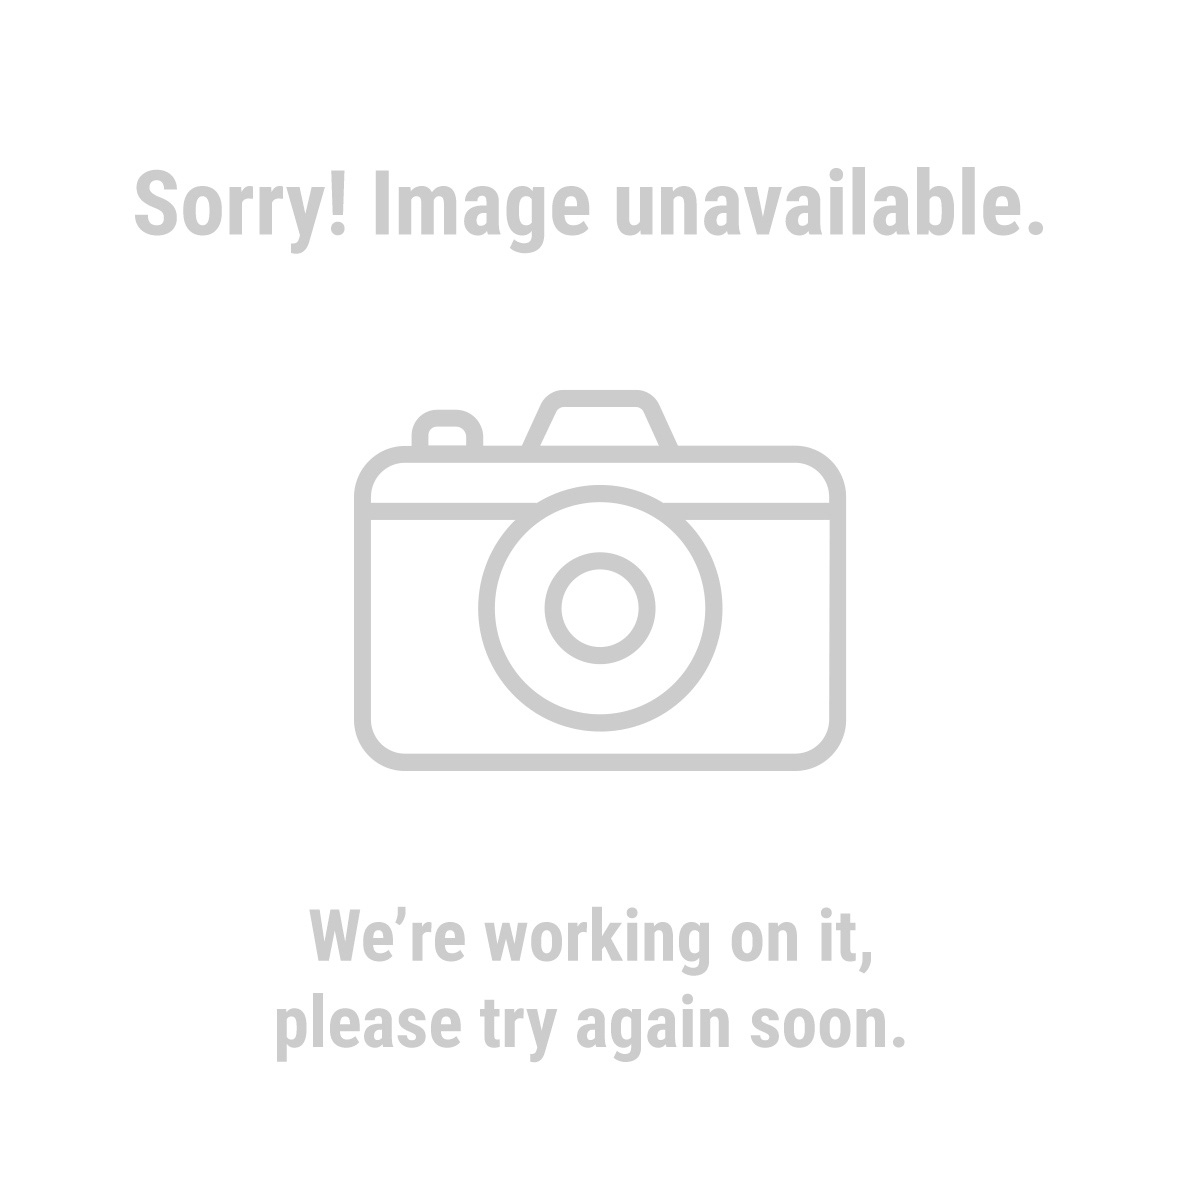 Windsor Design® 97544 No. 33 Bench Plane